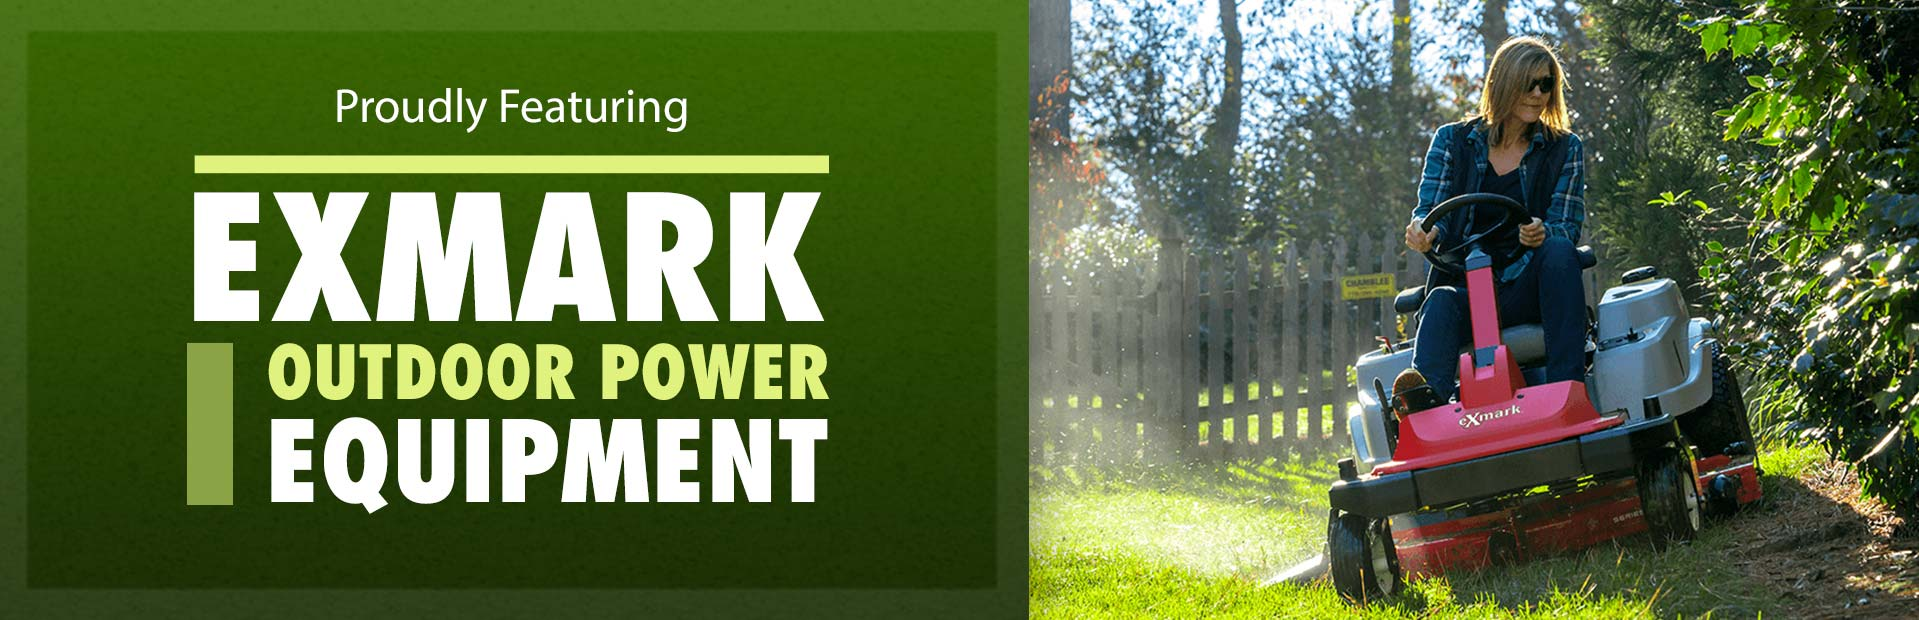 Exmark Outdoor Power Equipment: Click here to view the lineup.